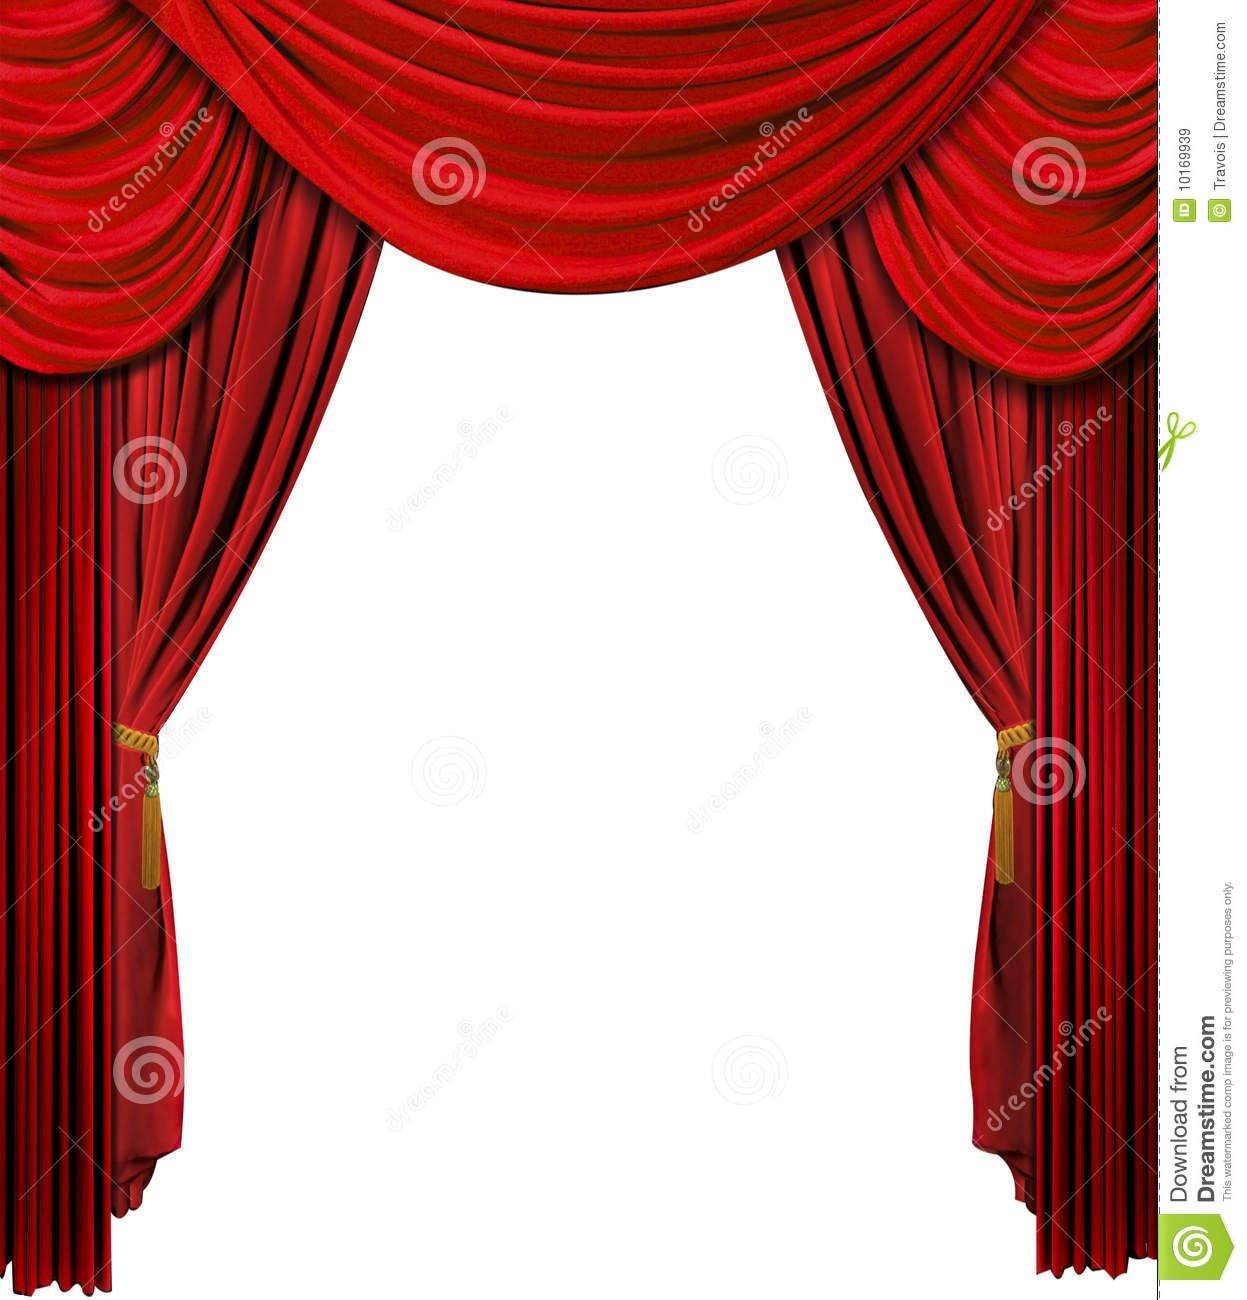 Bl blue stage curtains background - Stage Curtain Design Teaser Top Part Of The Curtains Put On Empty Batton And Bring